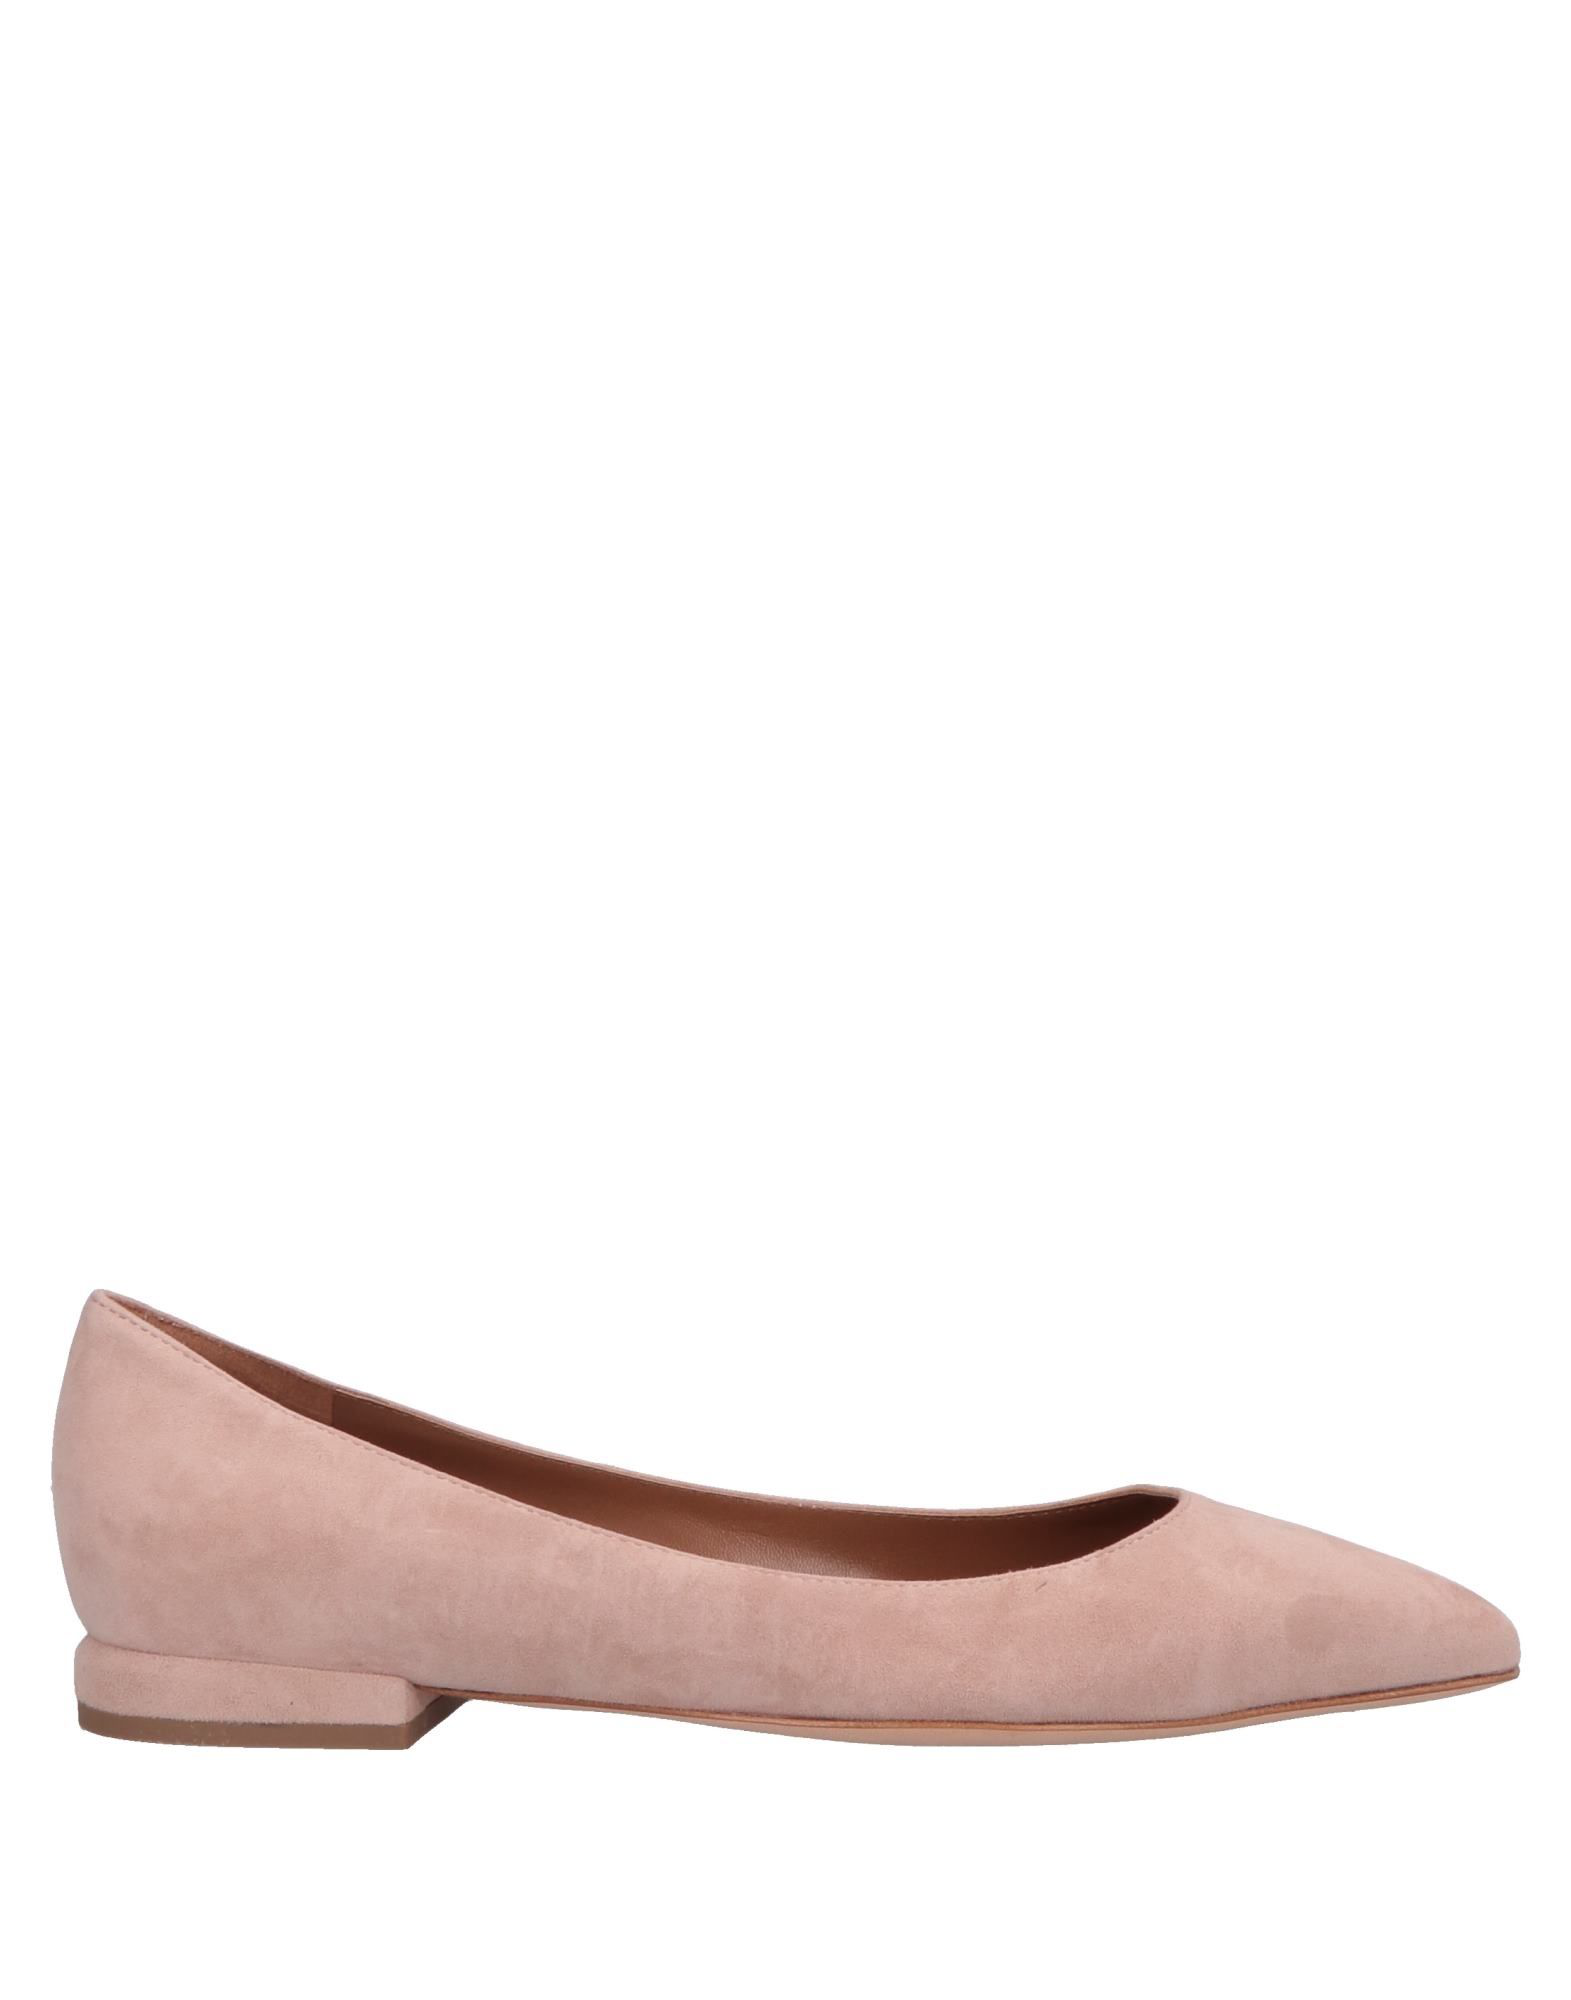 d766796e1 Fratelli Rossetti Ballet Flats In Pale Pink | ModeSens